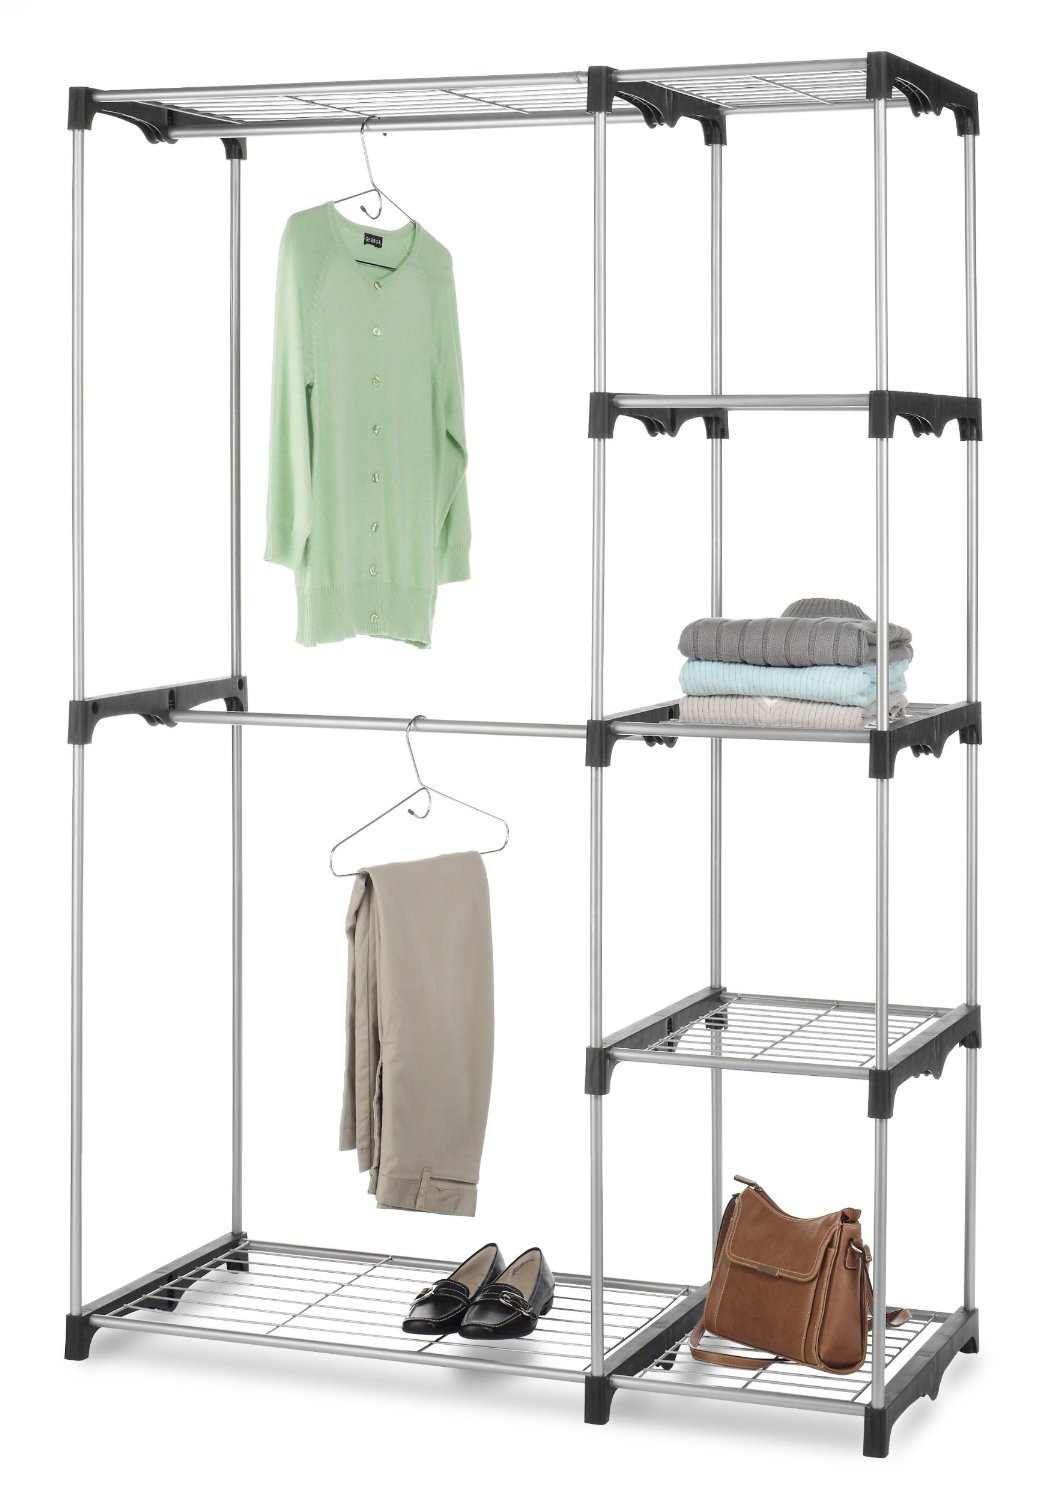 full tan for m sweater organi of size organizers shelf target threshold hanging cubby baskets organizer closet cube with bedroom storage